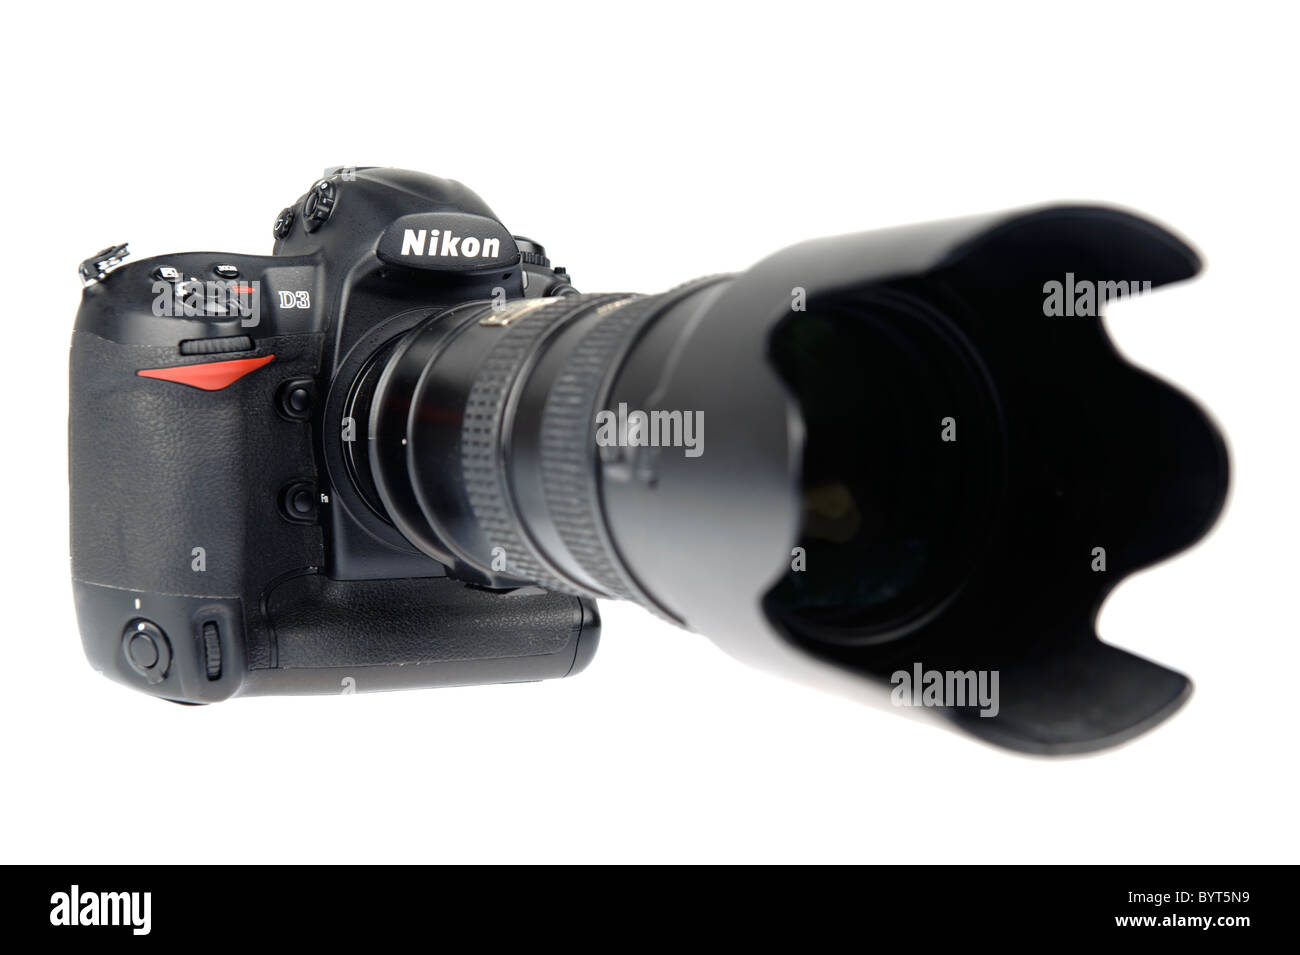 Nikon D3 full frame digital camera DSLR with Nikkor 70-200mm f/2.8 ...